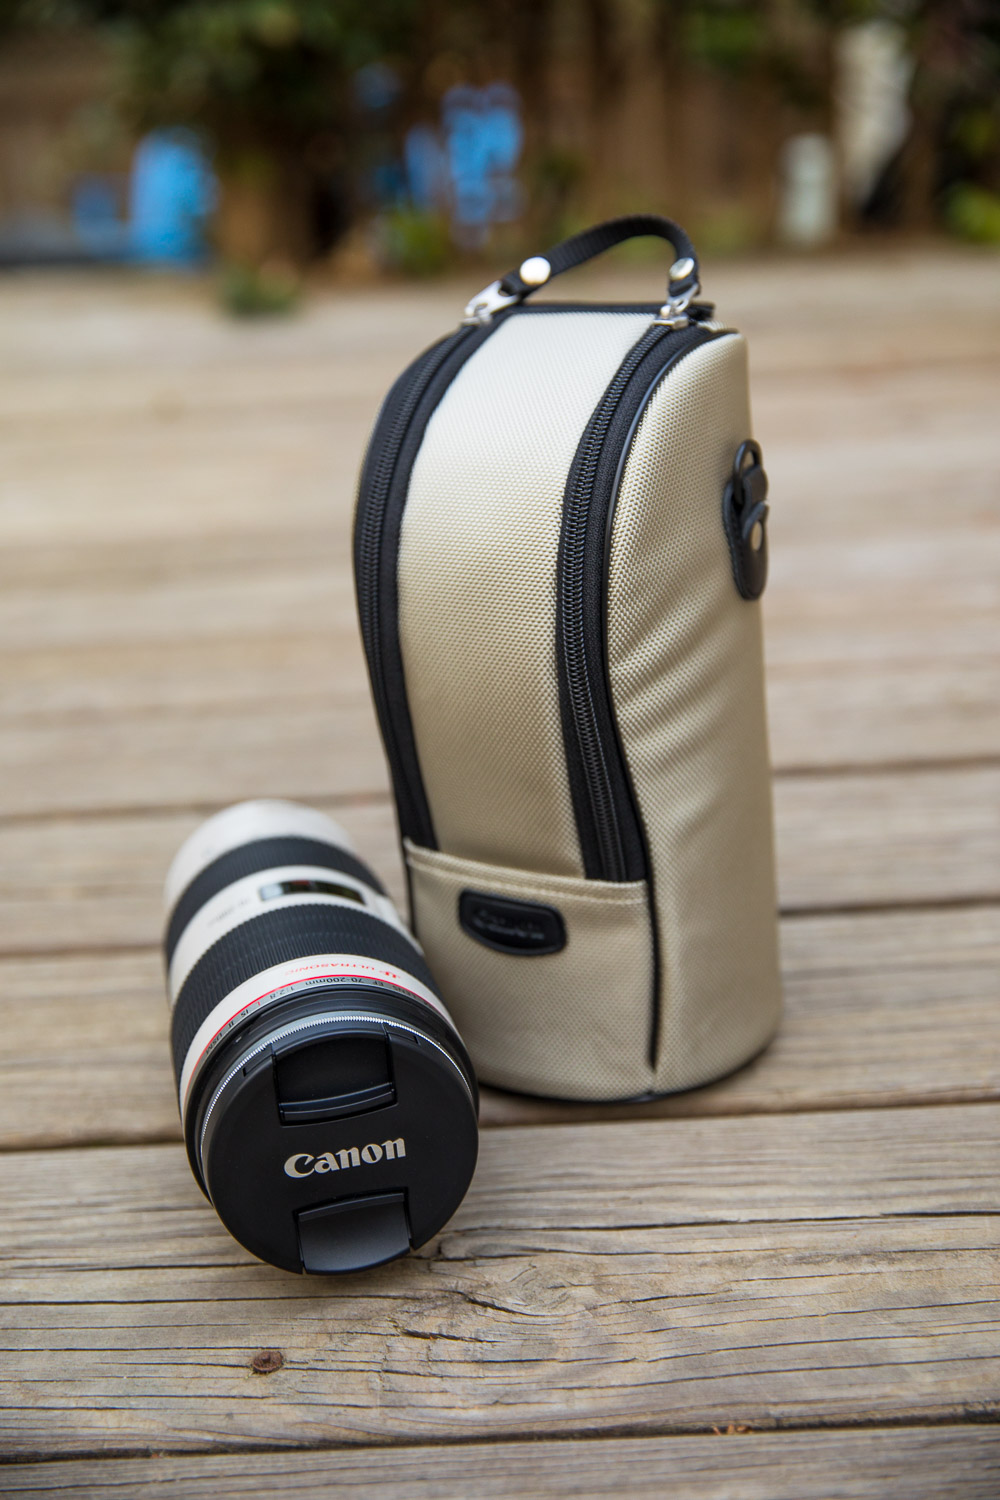 You know you've got a fancy lens when it comes with its own carrying case, ha!